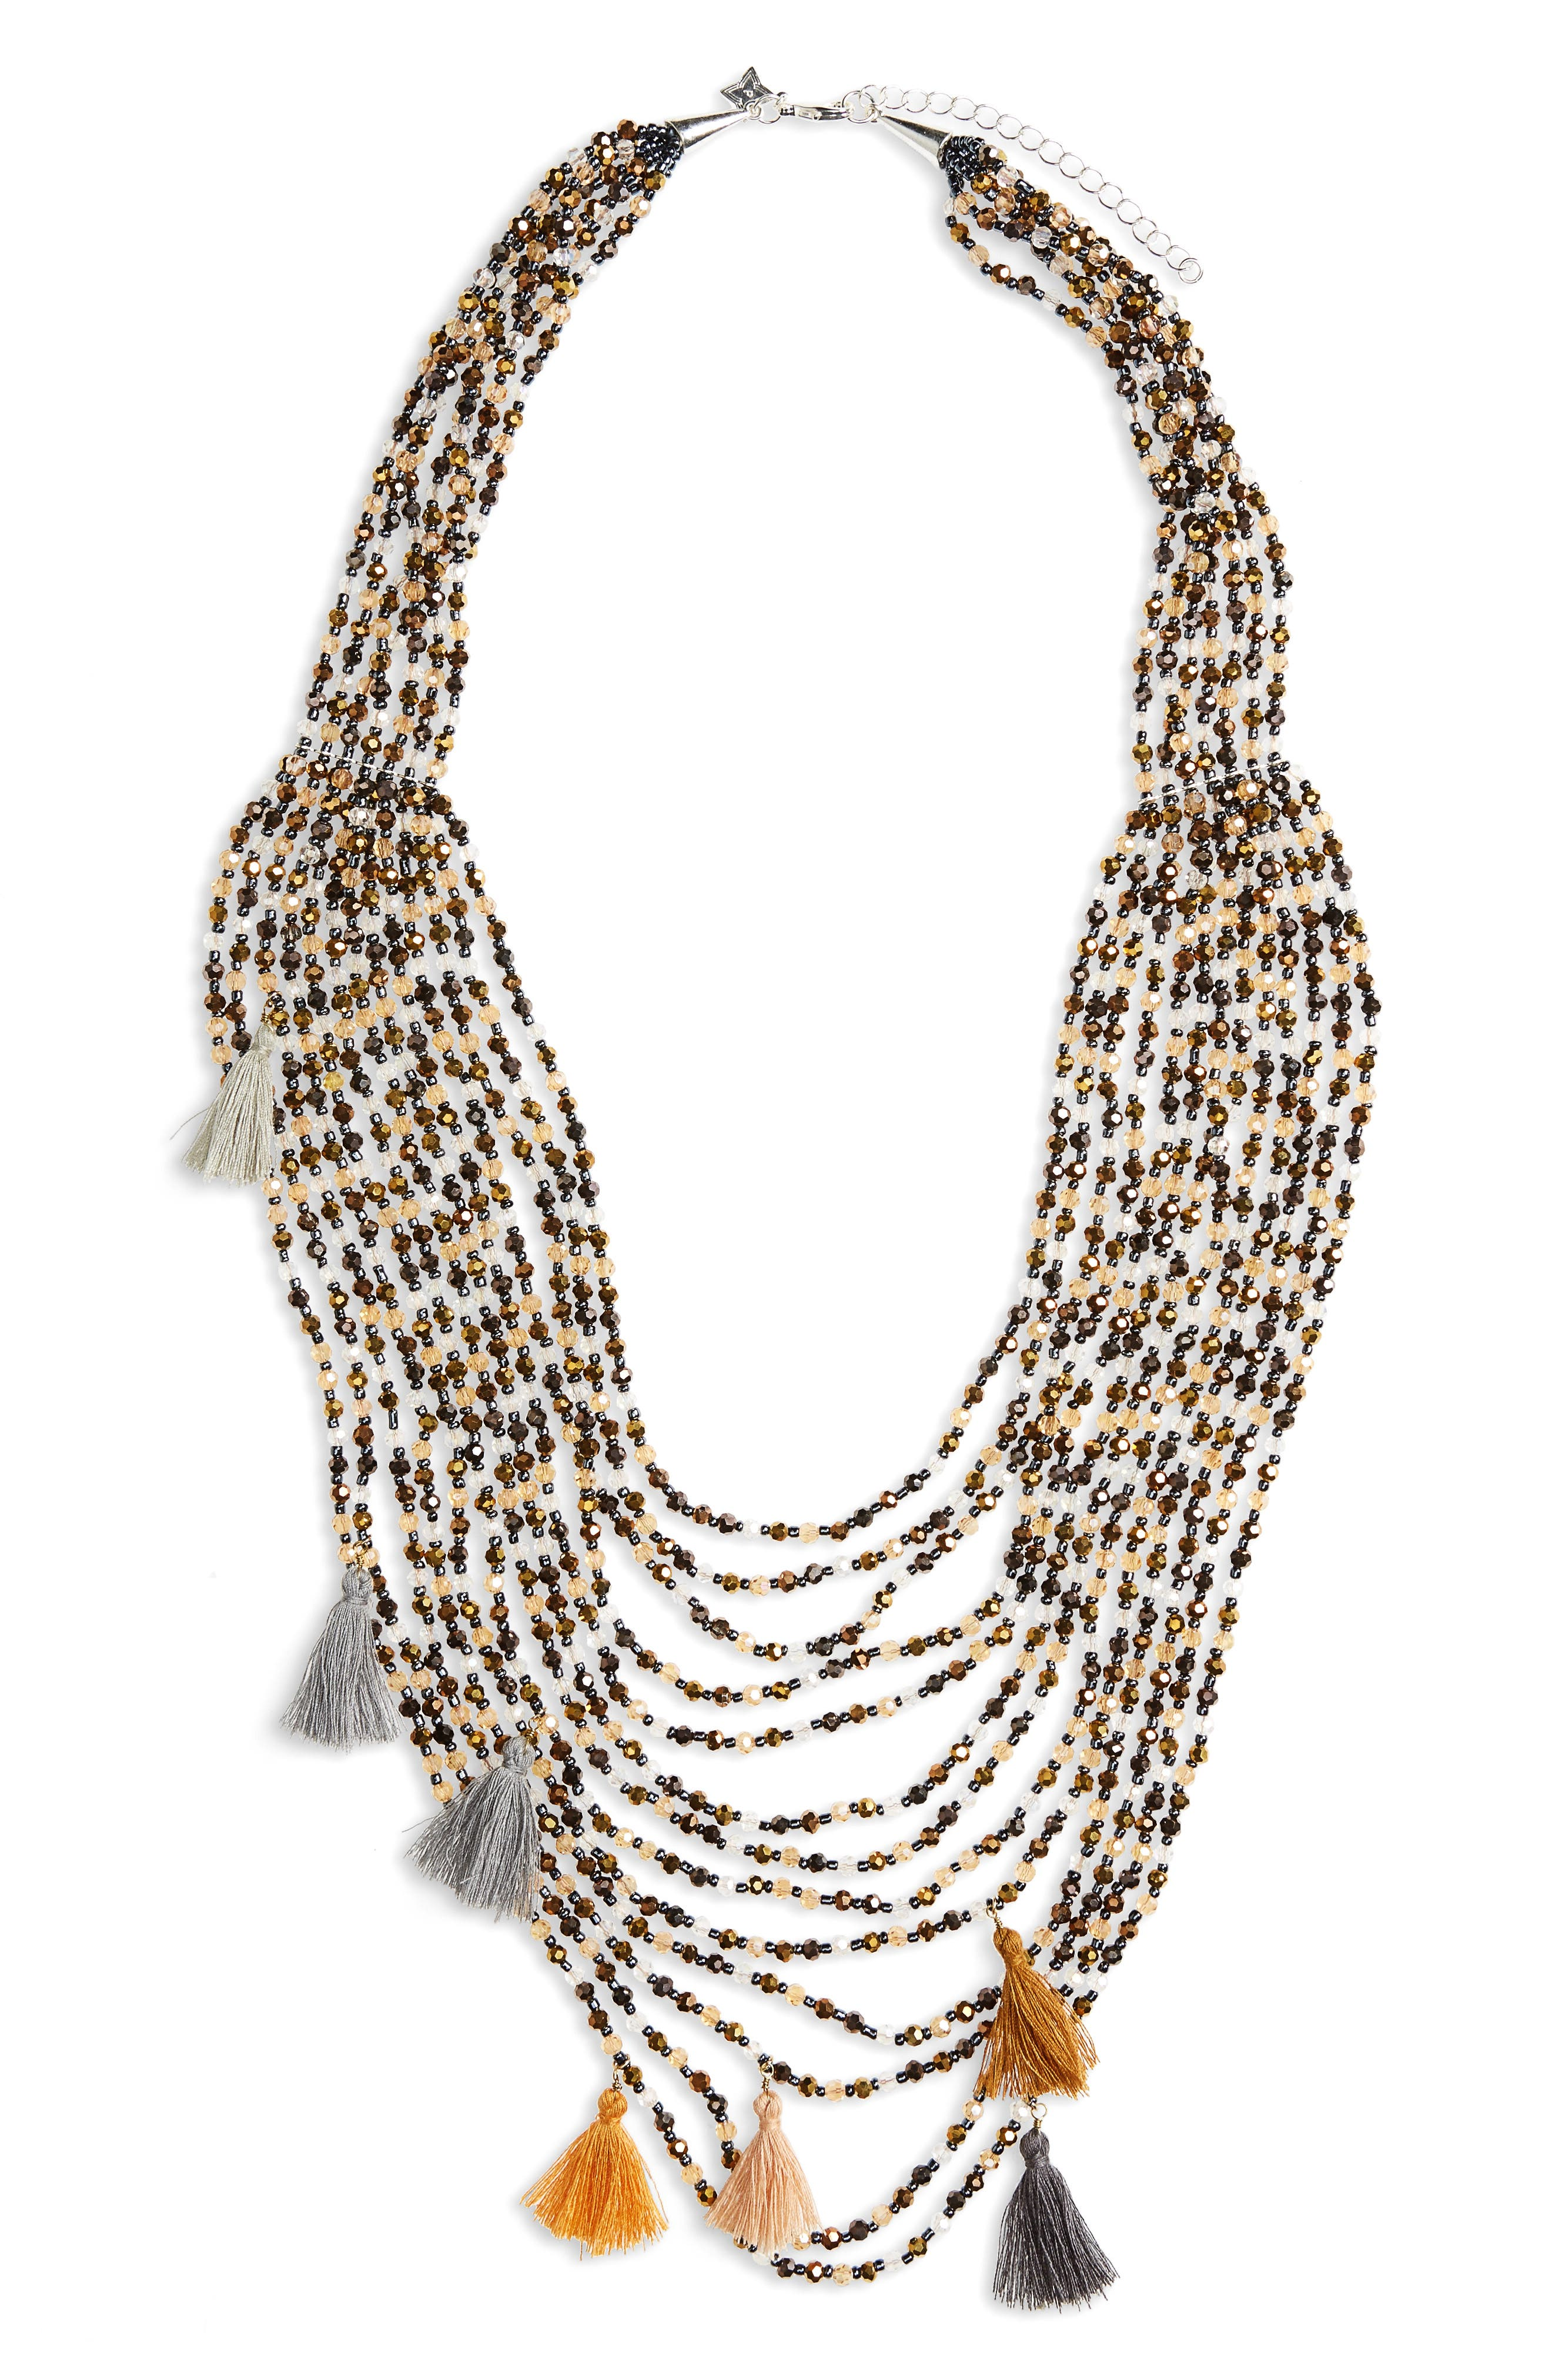 Panacea Multistrand Crystal Statement Necklace